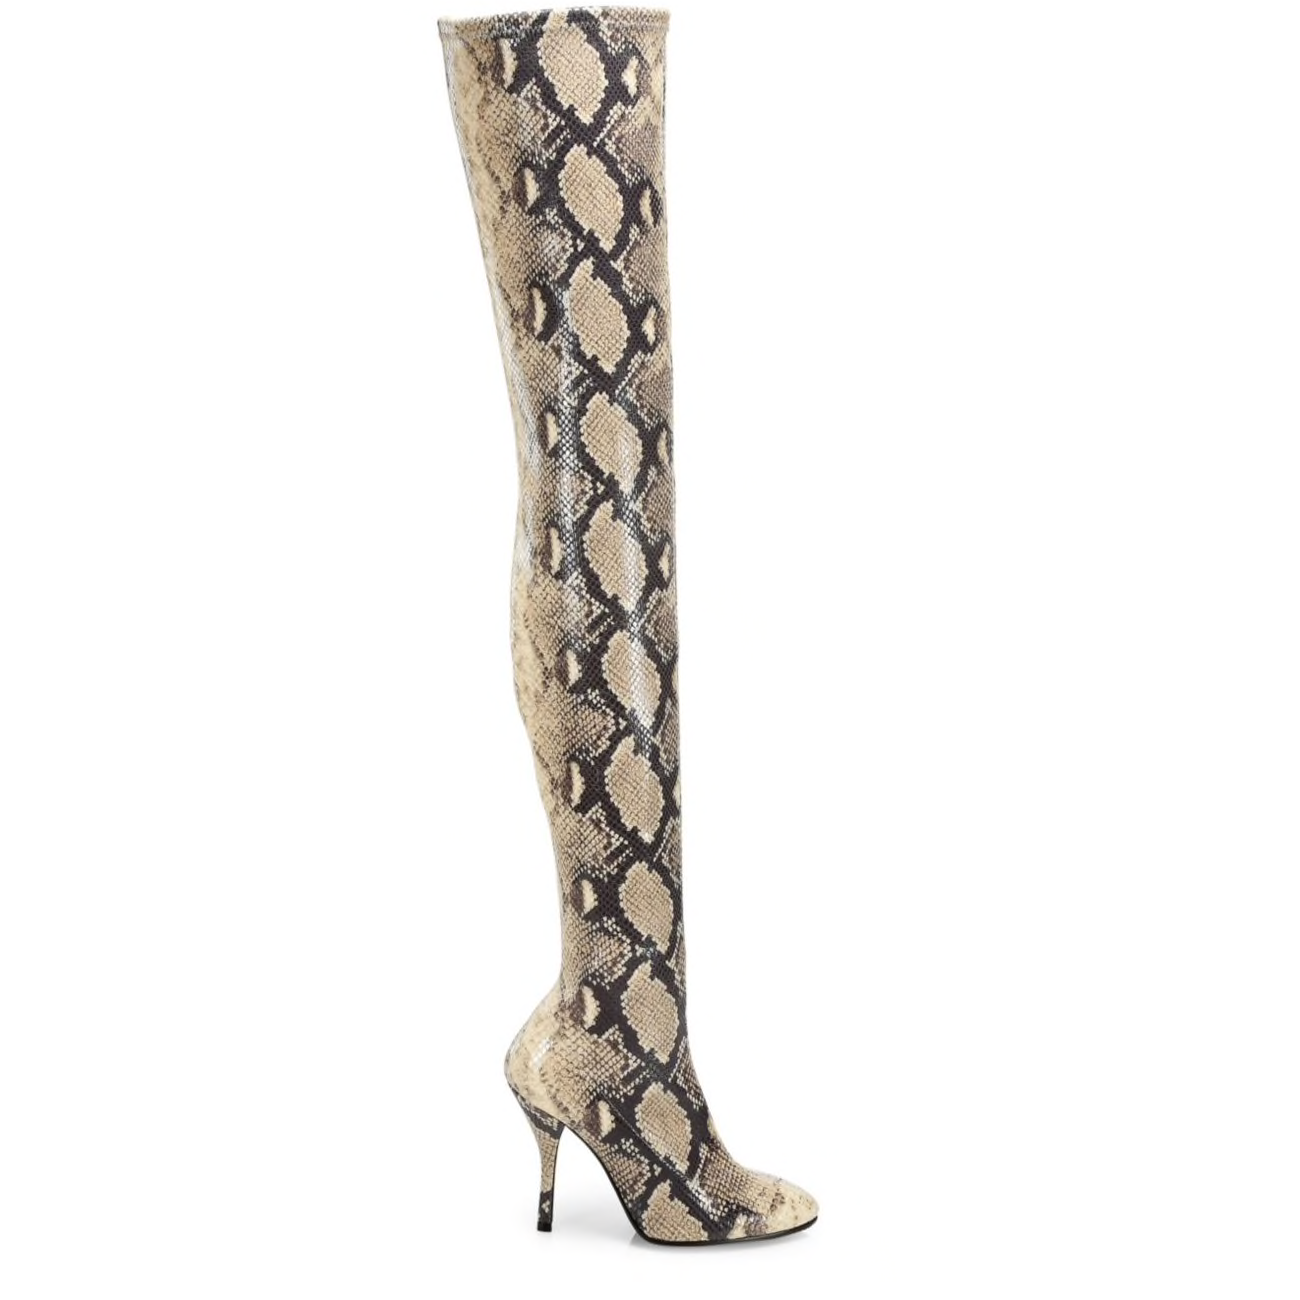 Shiloh Snake-Print Over-the-Knee Boots